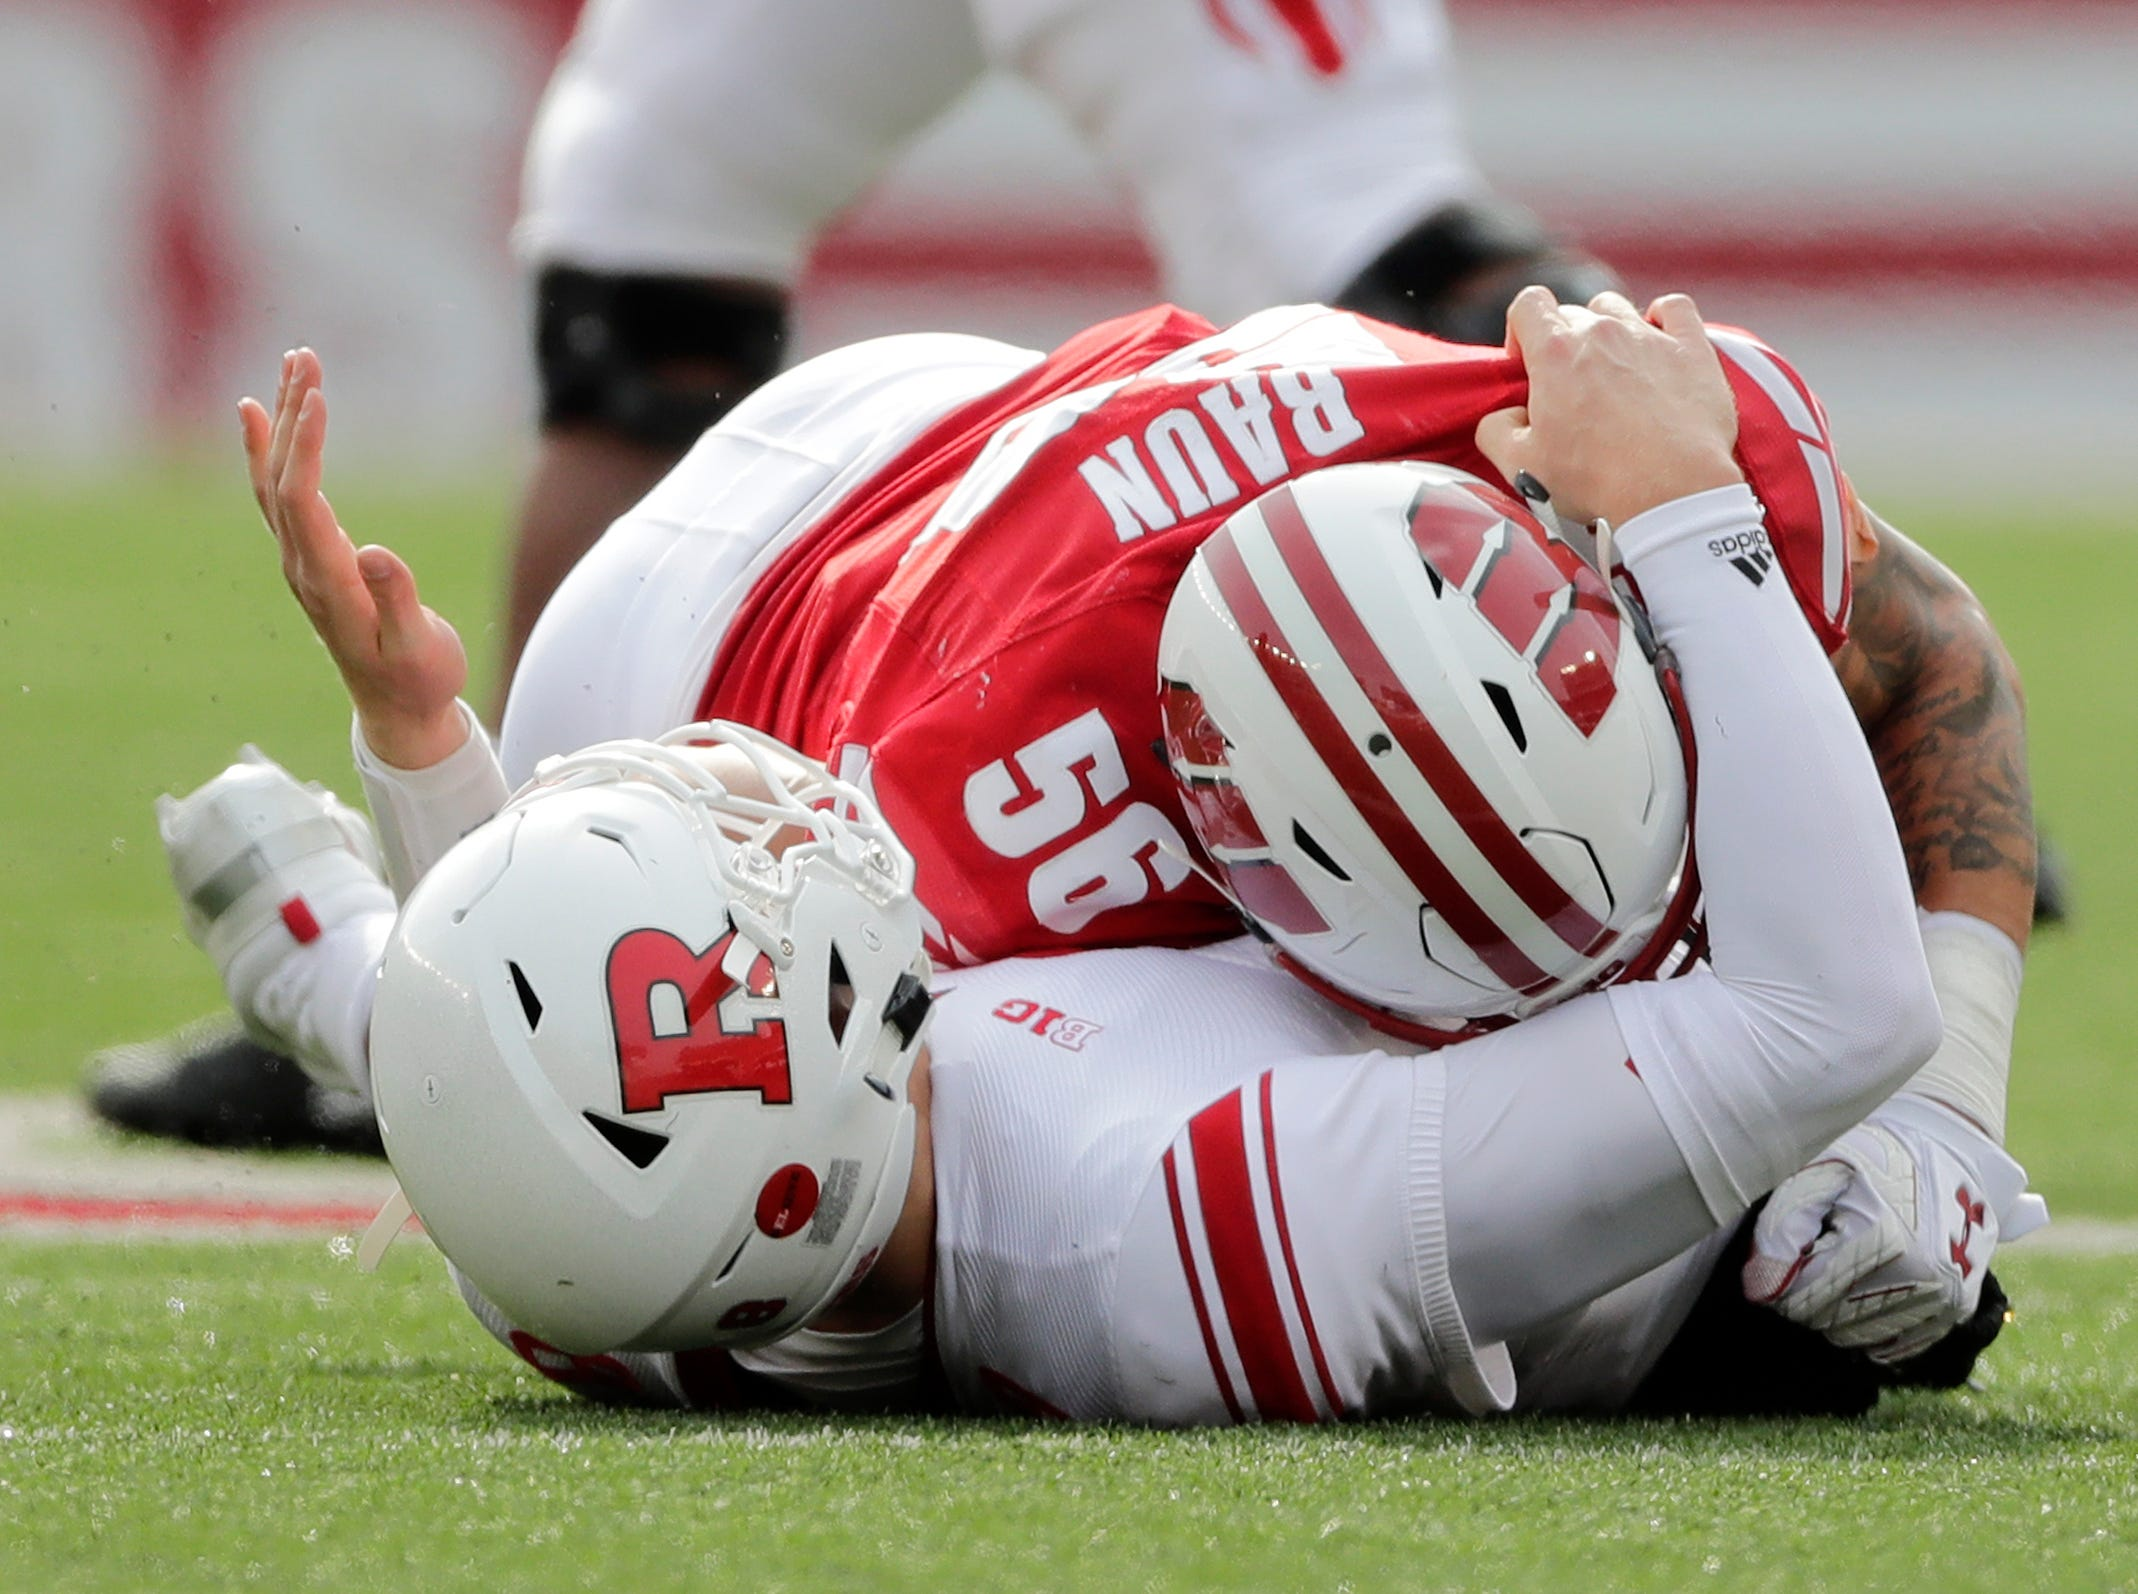 Wisconsin Badgers linebacker Zack Baun (56) hits Rutgers Scarlet Knights quarterback Artur Sitkowski (8) in the second quarter of a Big Ten football game at Camp Randall Stadium on Saturday, November 3, 2018 in Madison, Wis.Adam Wesley/USA TODAY NETWORK-Wisconsin